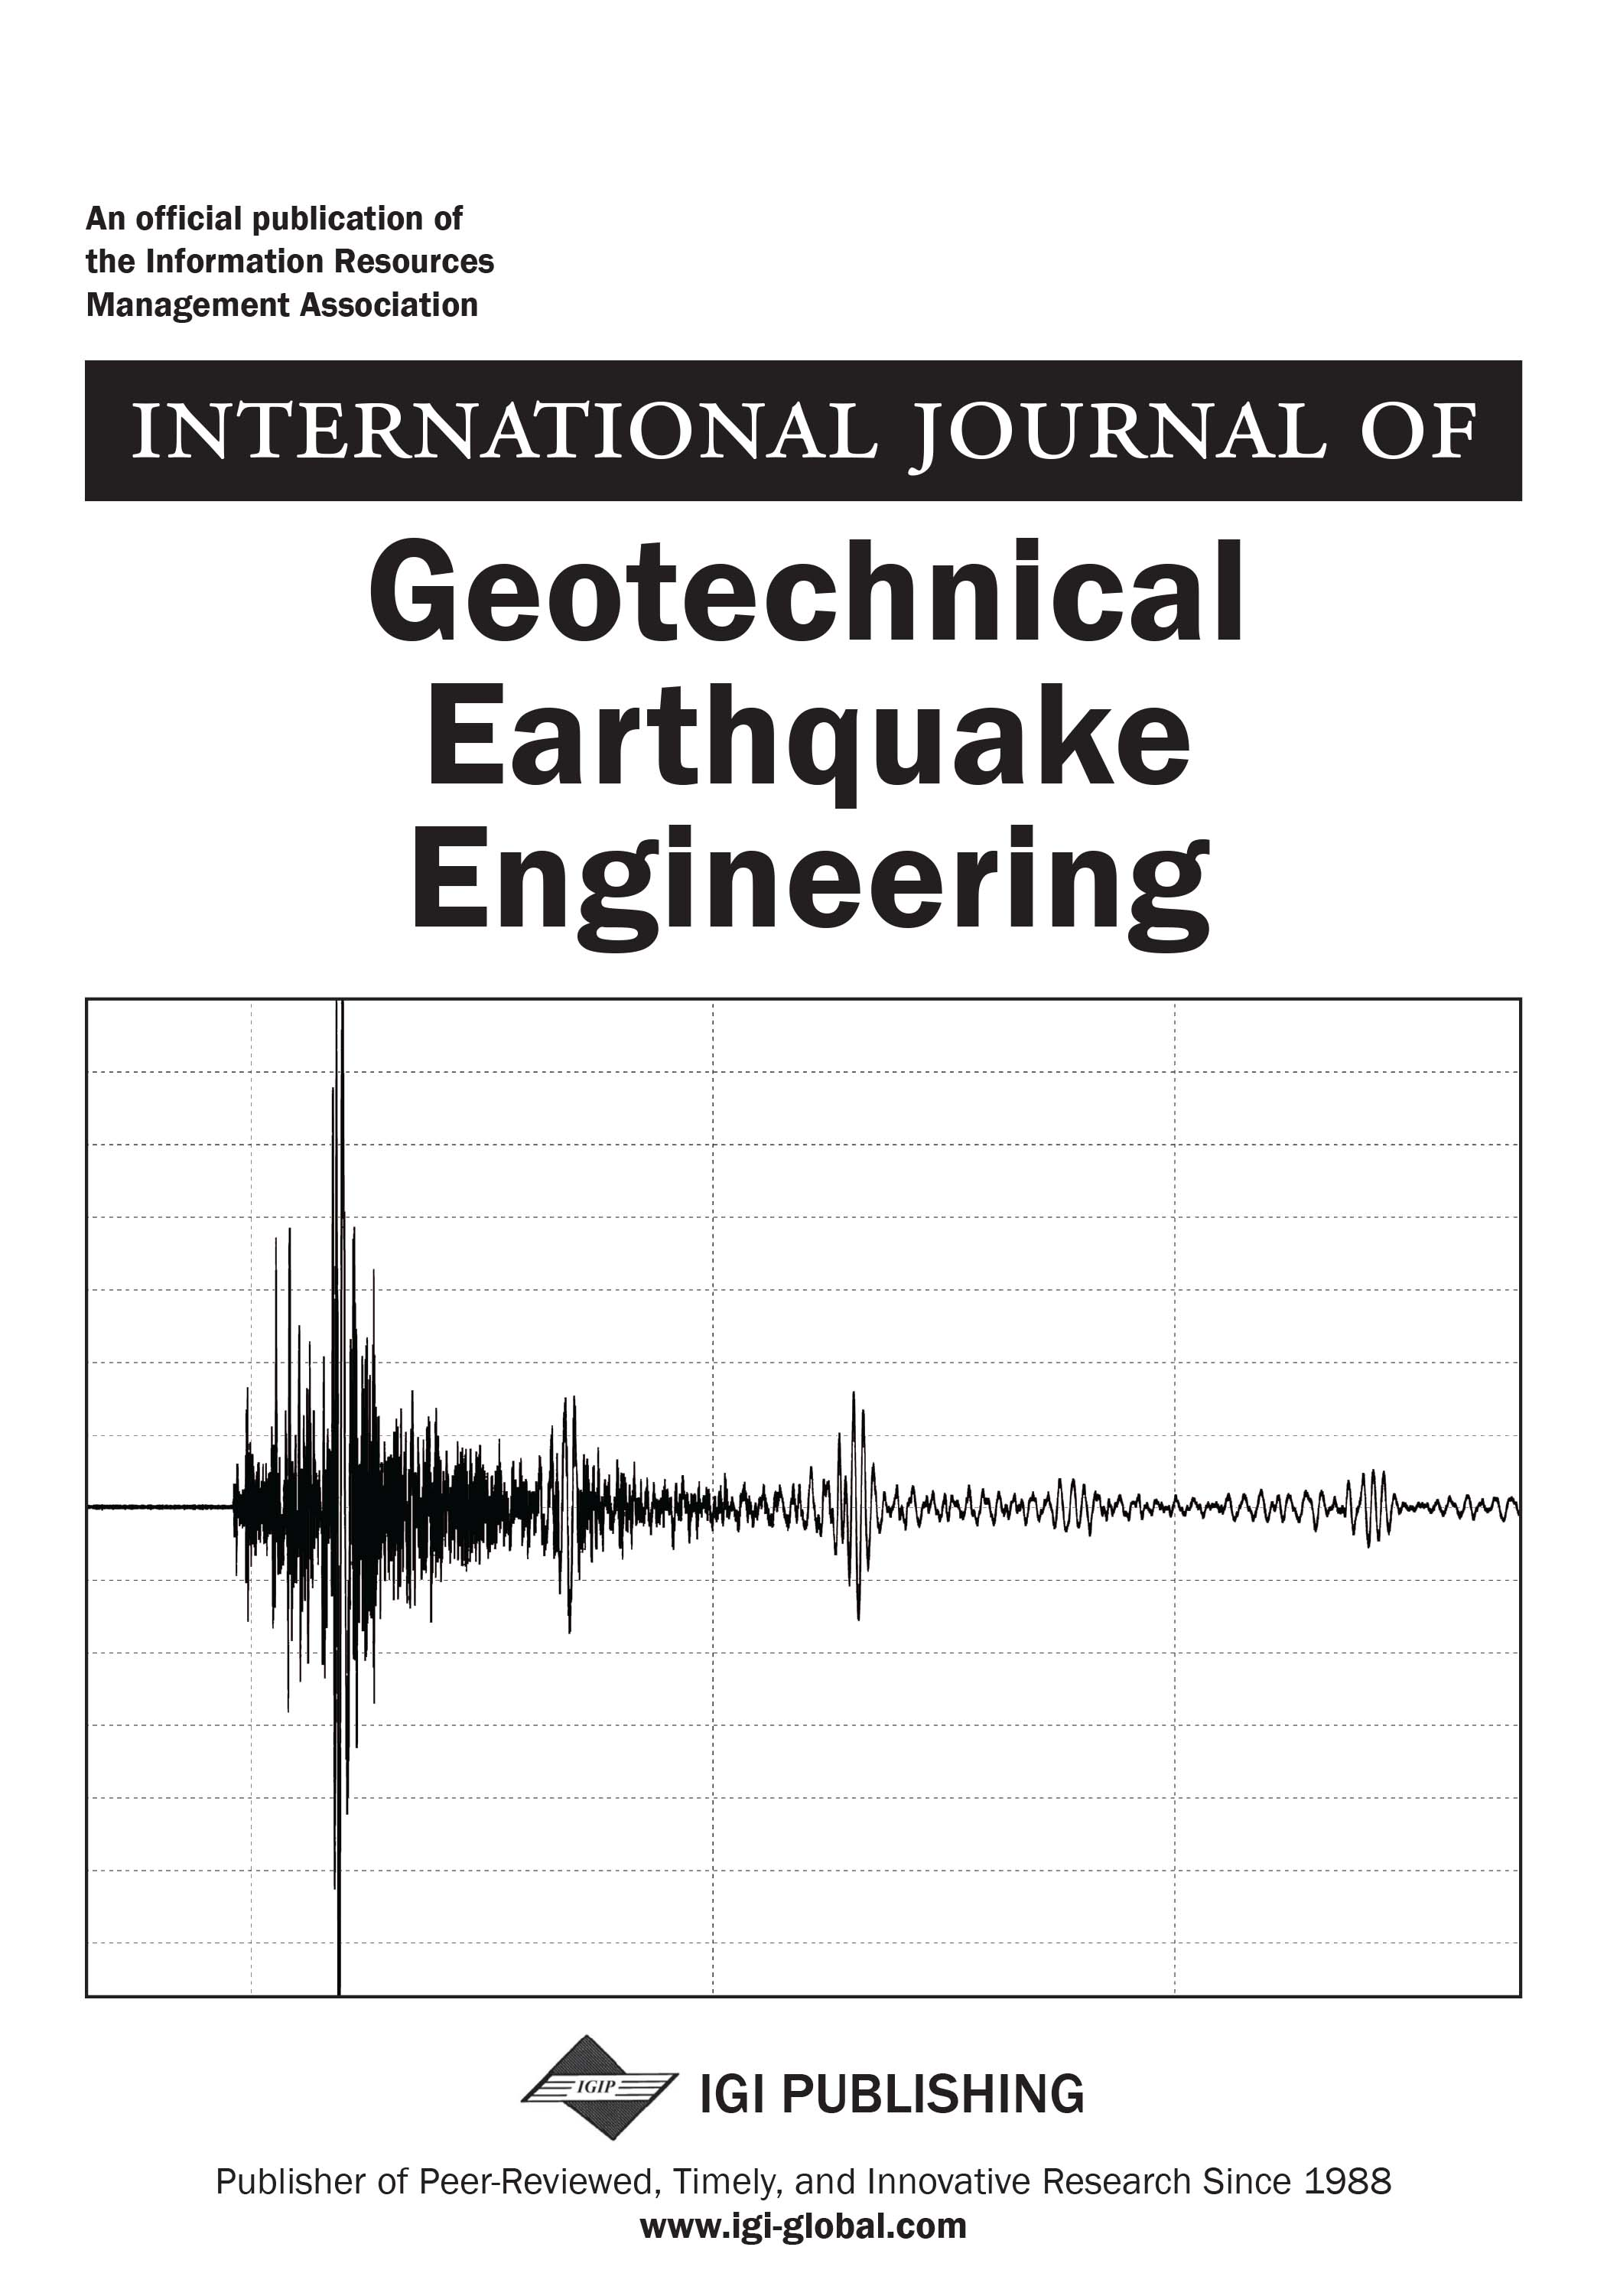 International Journal of Geotechnical Earthquake Engineering (IJGEE) 2018 Inaugural Journal